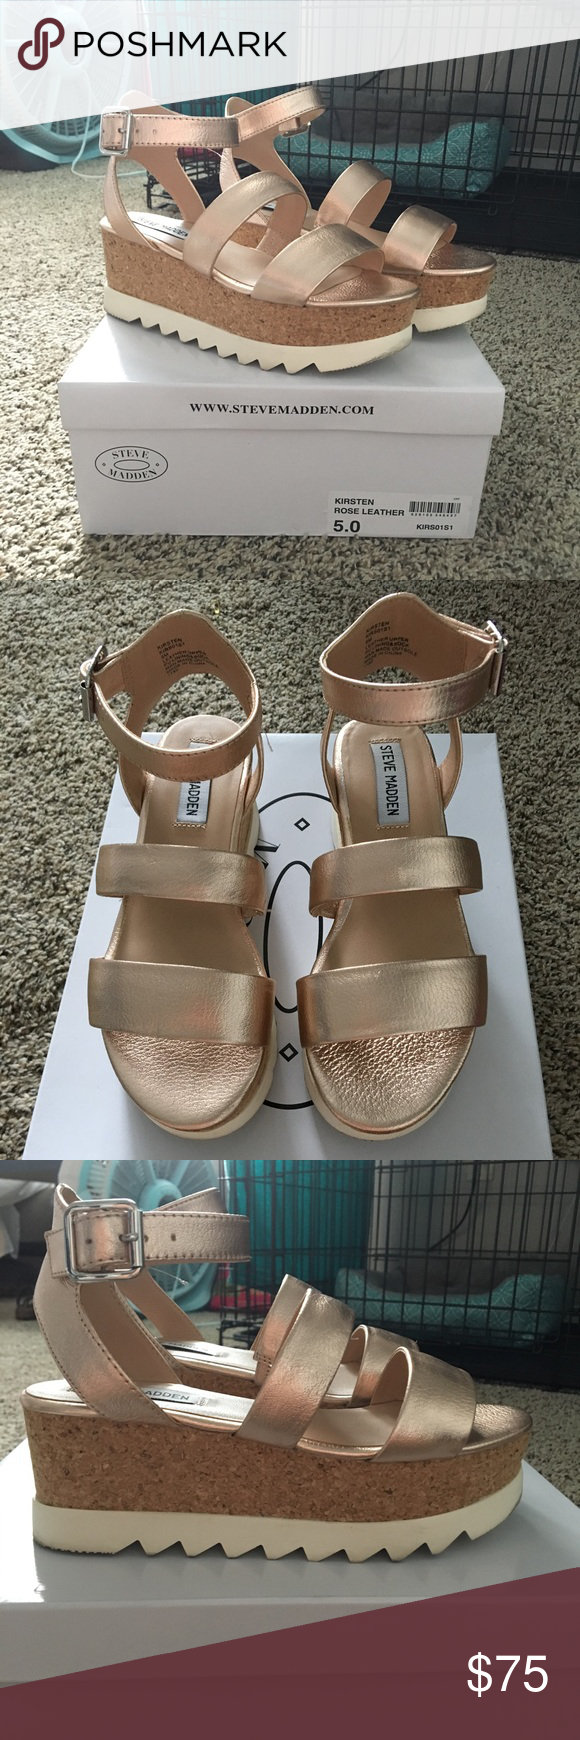 baef3cee82d5 Steve Madden - Kirsten rose gold platform sandals Only worn once. Look like  new! Way more lightweight than they look and are super trendy!